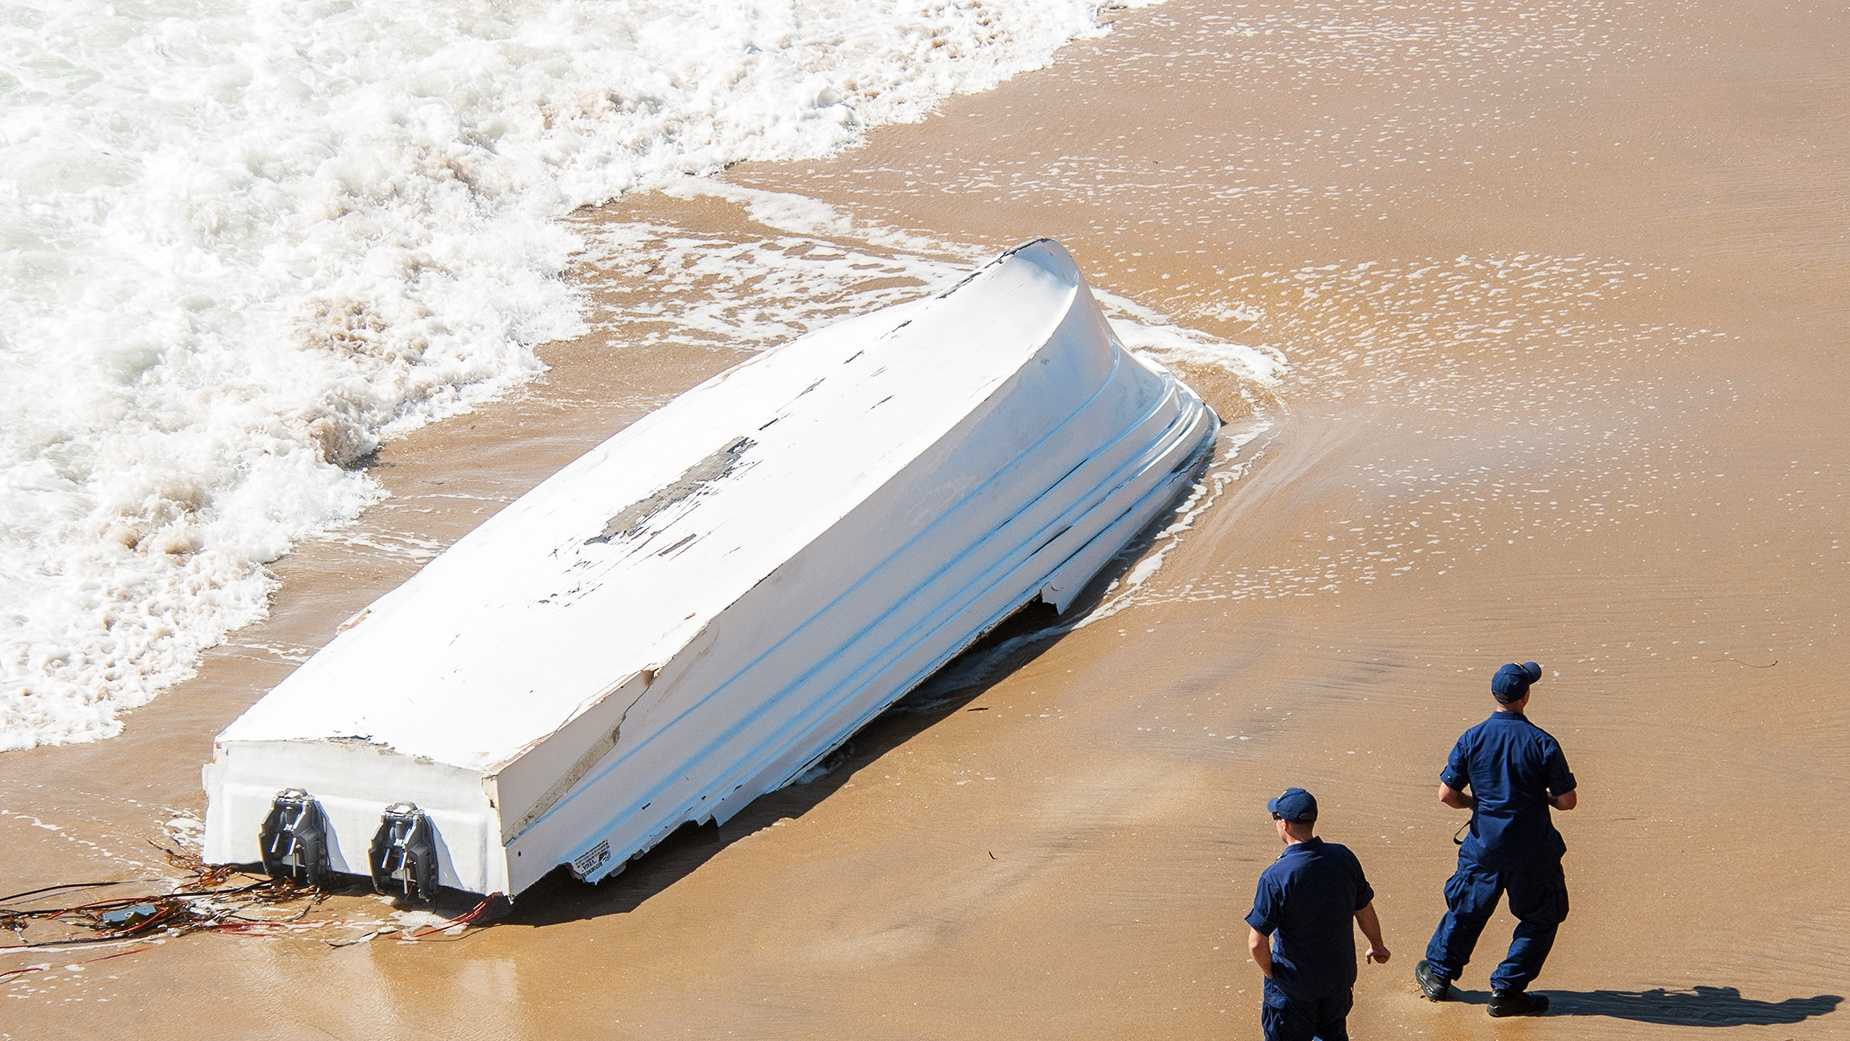 A drug smuggling boat was found at Four Mile Beach north of Santa Cruz in October 2013.